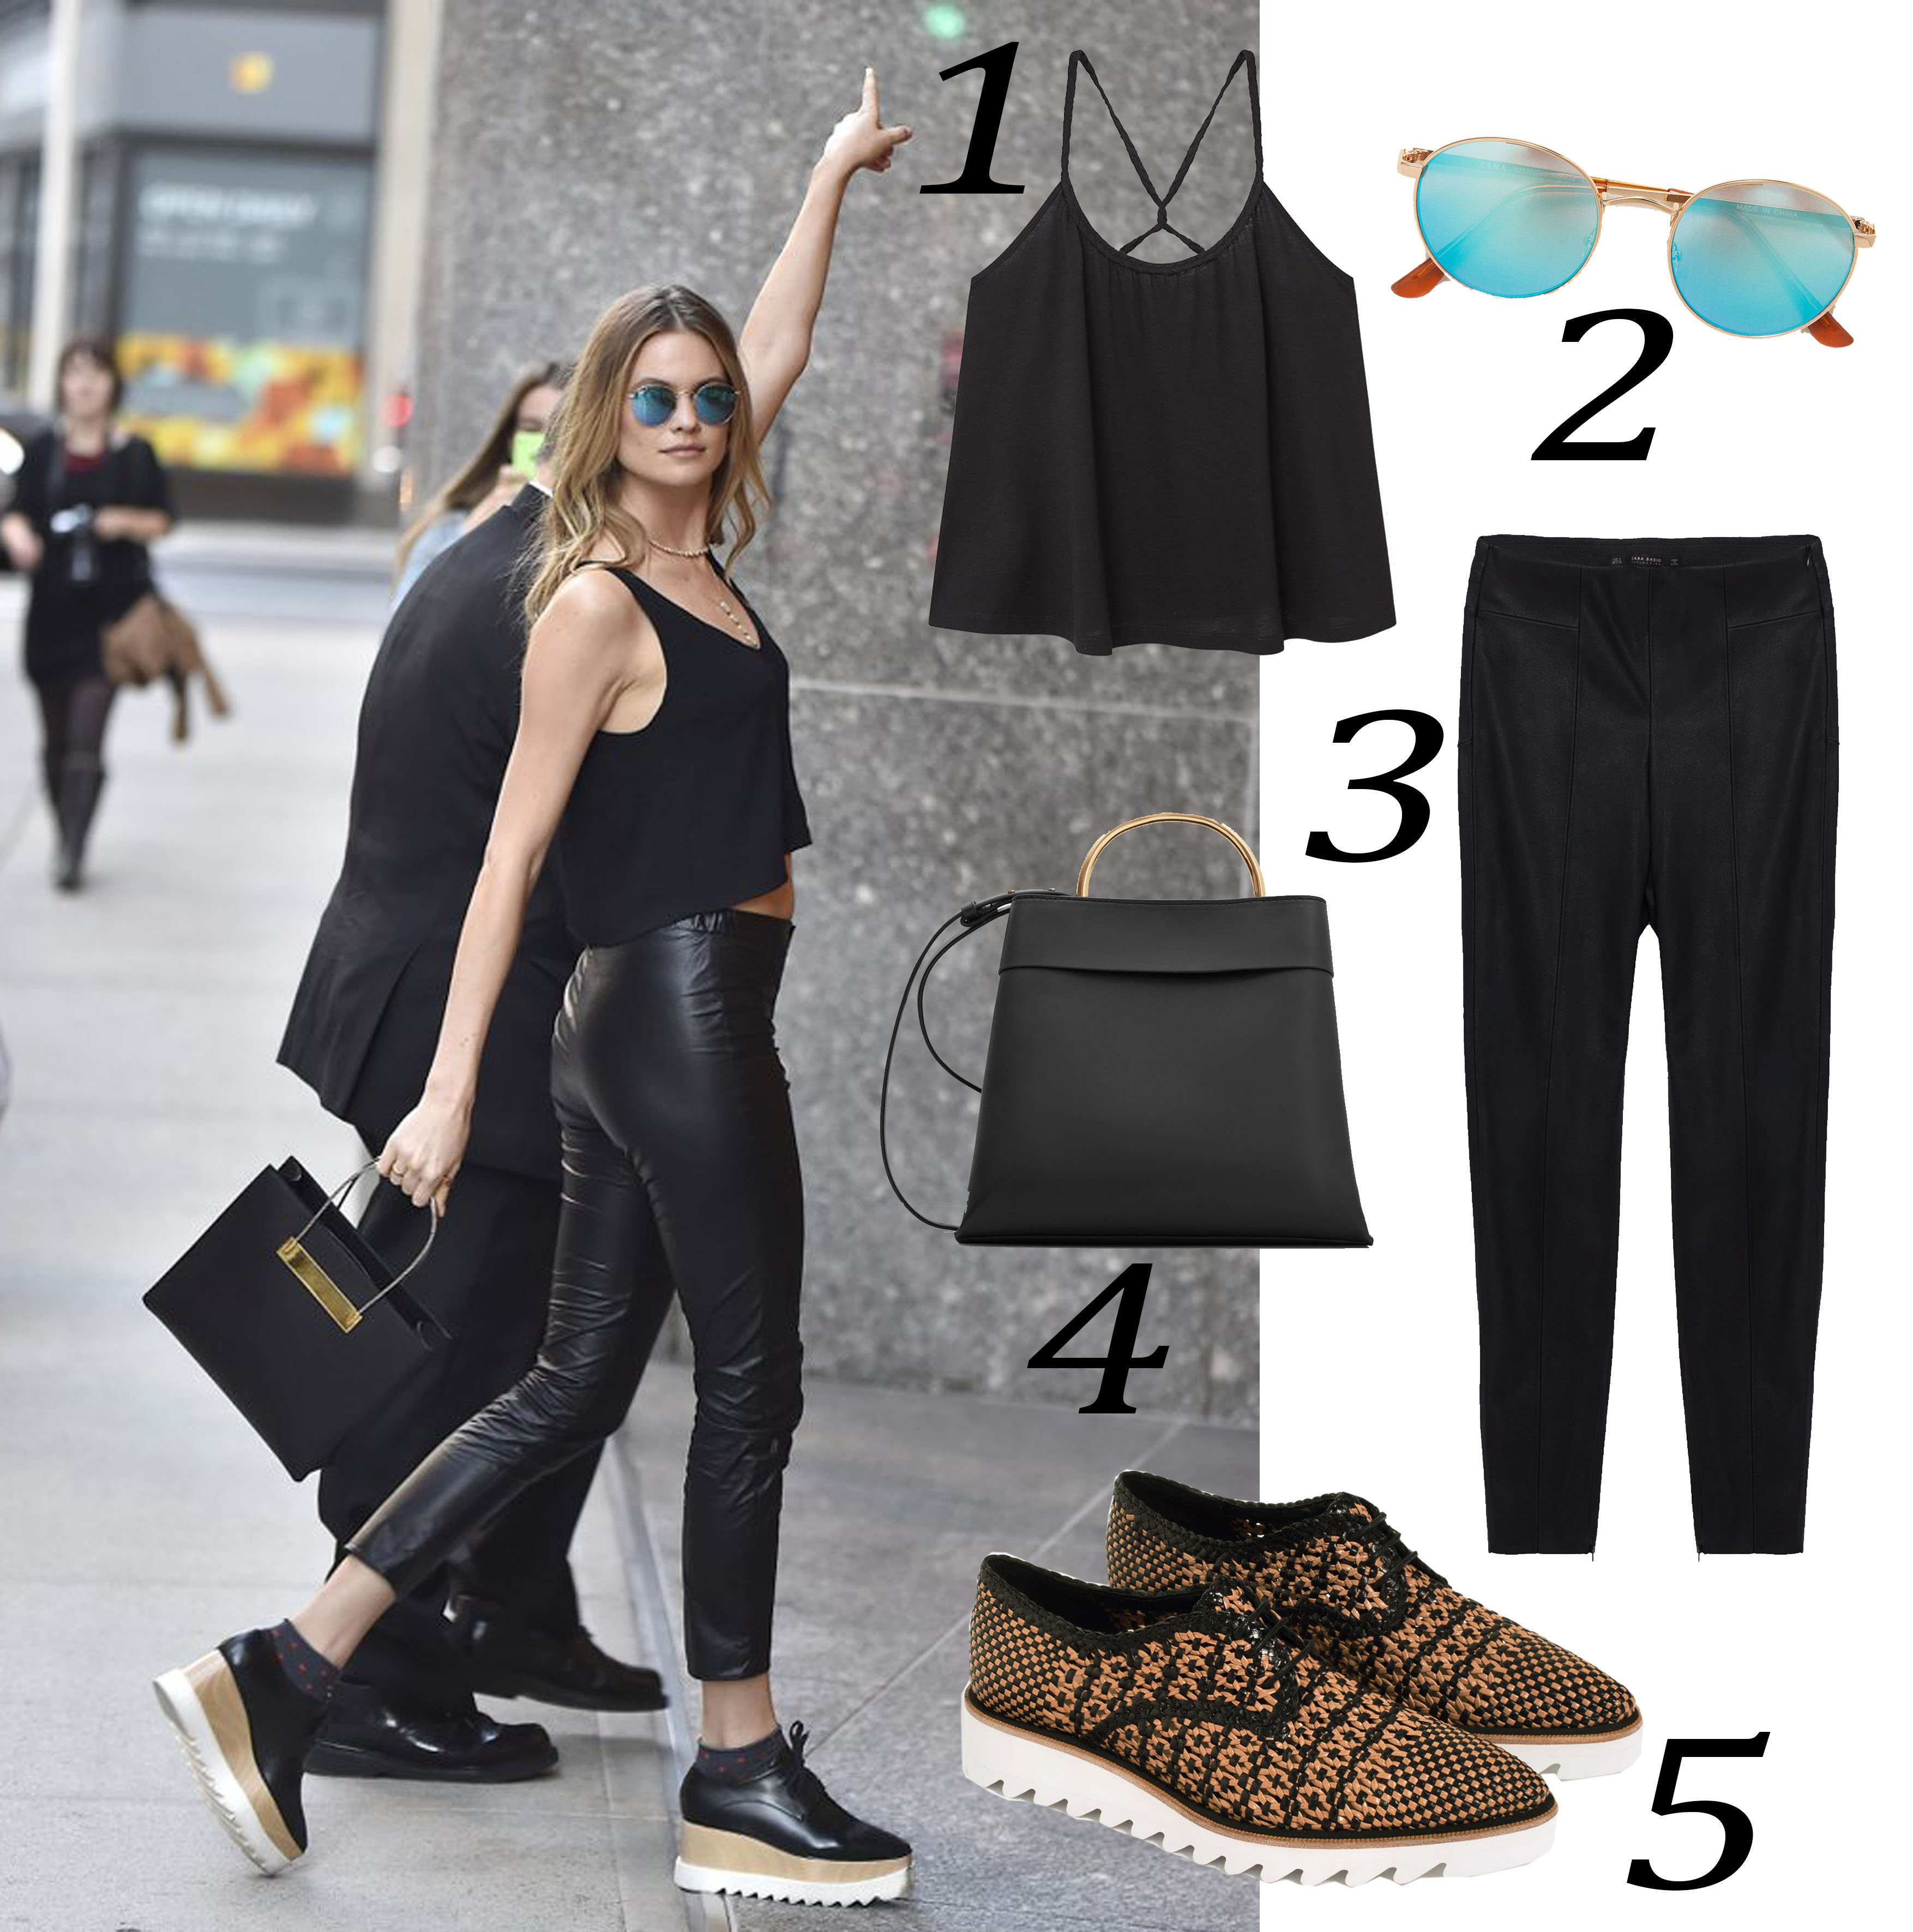 Gaya Head-to-Toe Warna Hitam yang Chic dari Behati Prinsloo